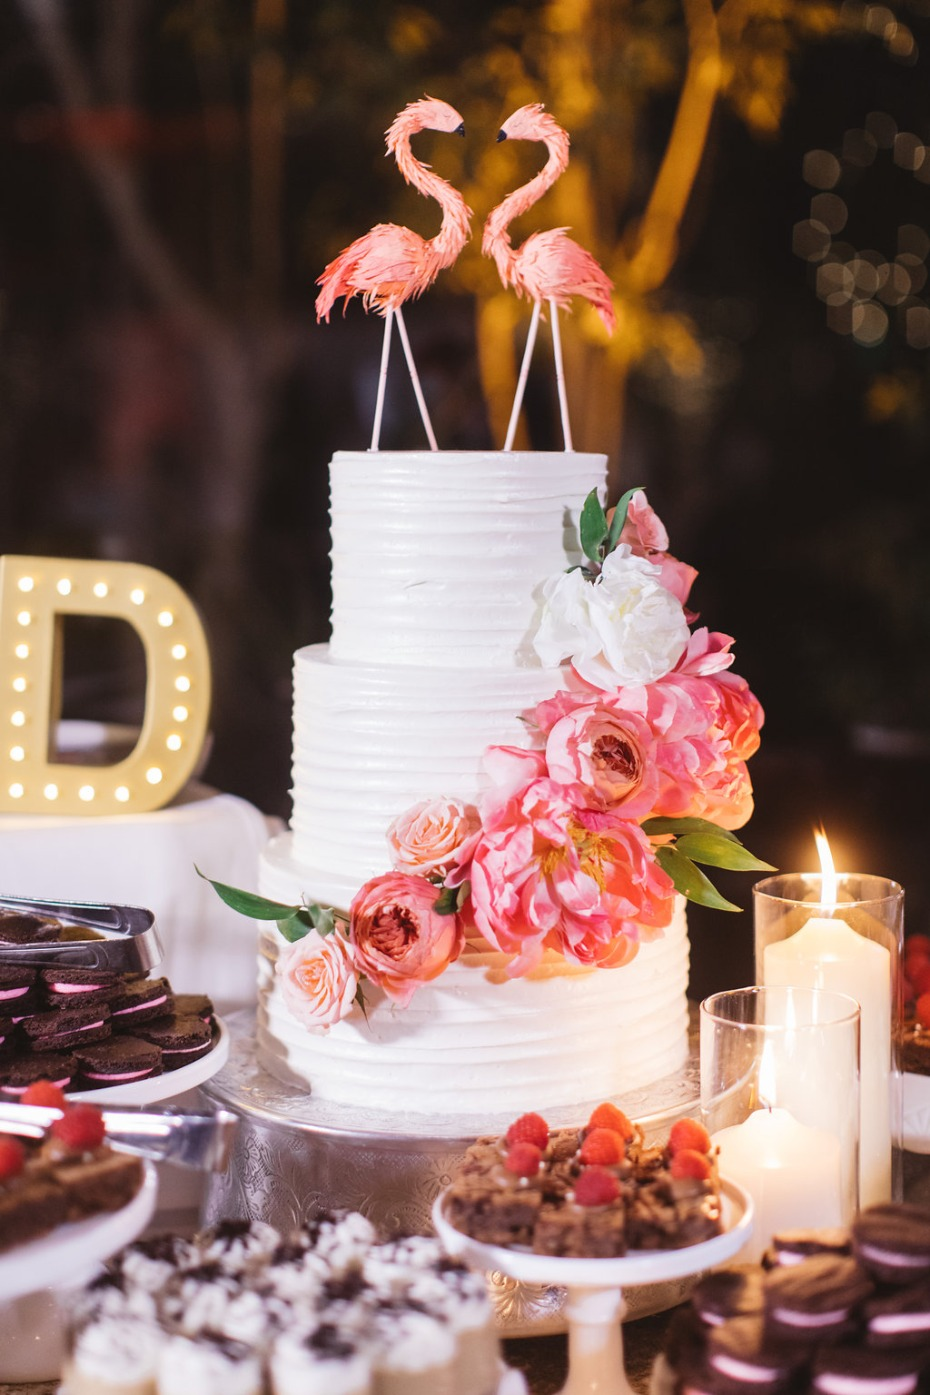 Wedding cake with flamingo toppers